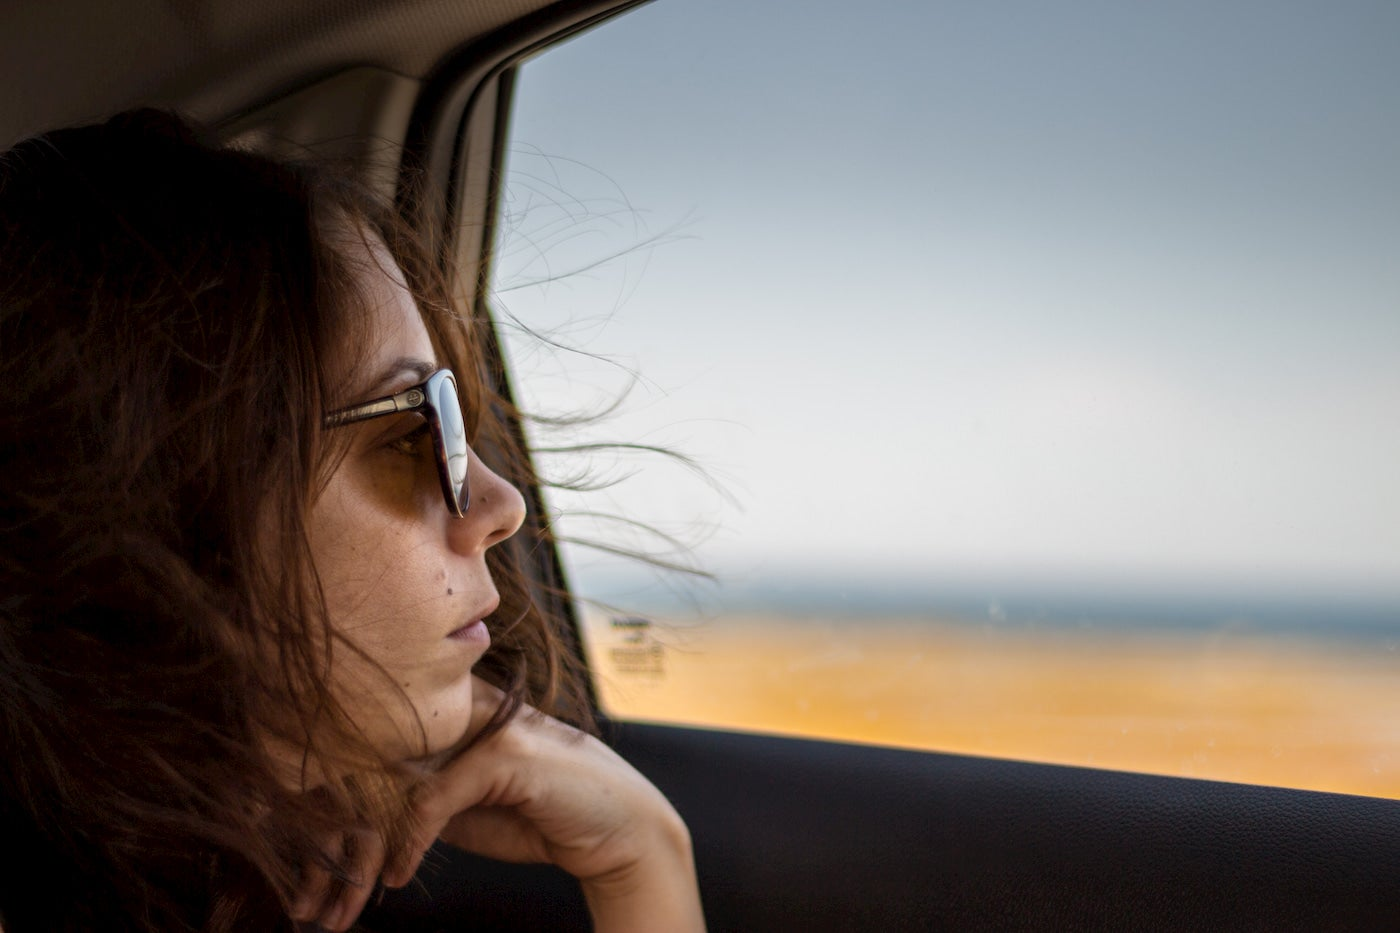 Women wearing sunglasses while looking out the window.